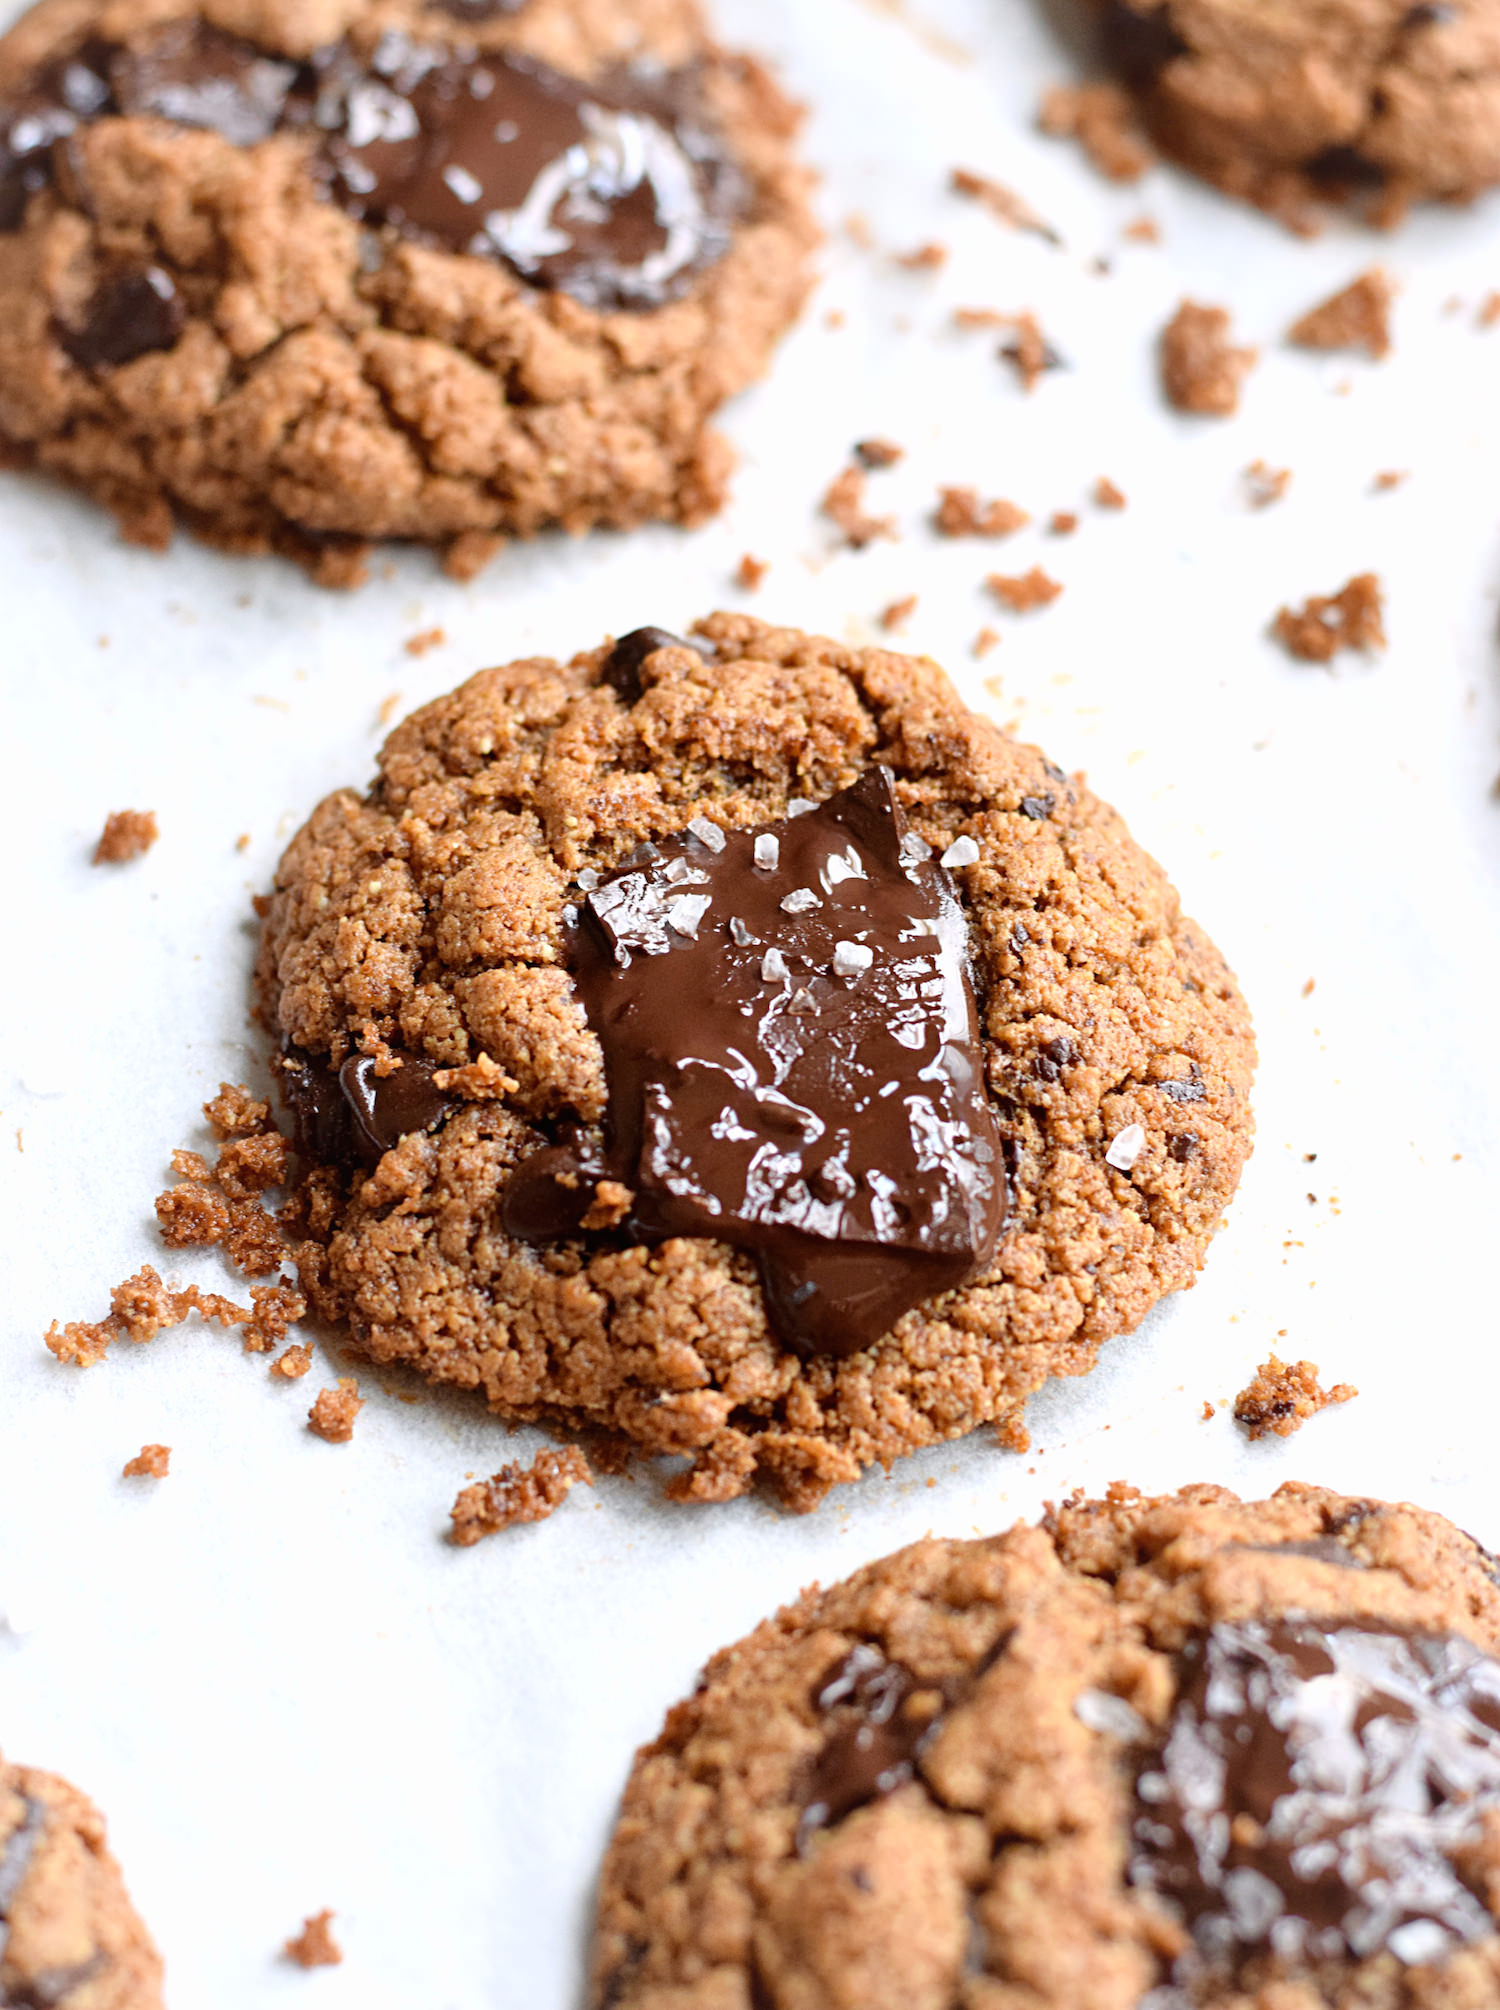 Wholesome Flourless Almond Butter Cookies – soft, chewy cookies loaded with chocolate chunks made without any gluten, dairy, oil, or refined sugar. Seriously addictive!   Trufflesandtrends.com